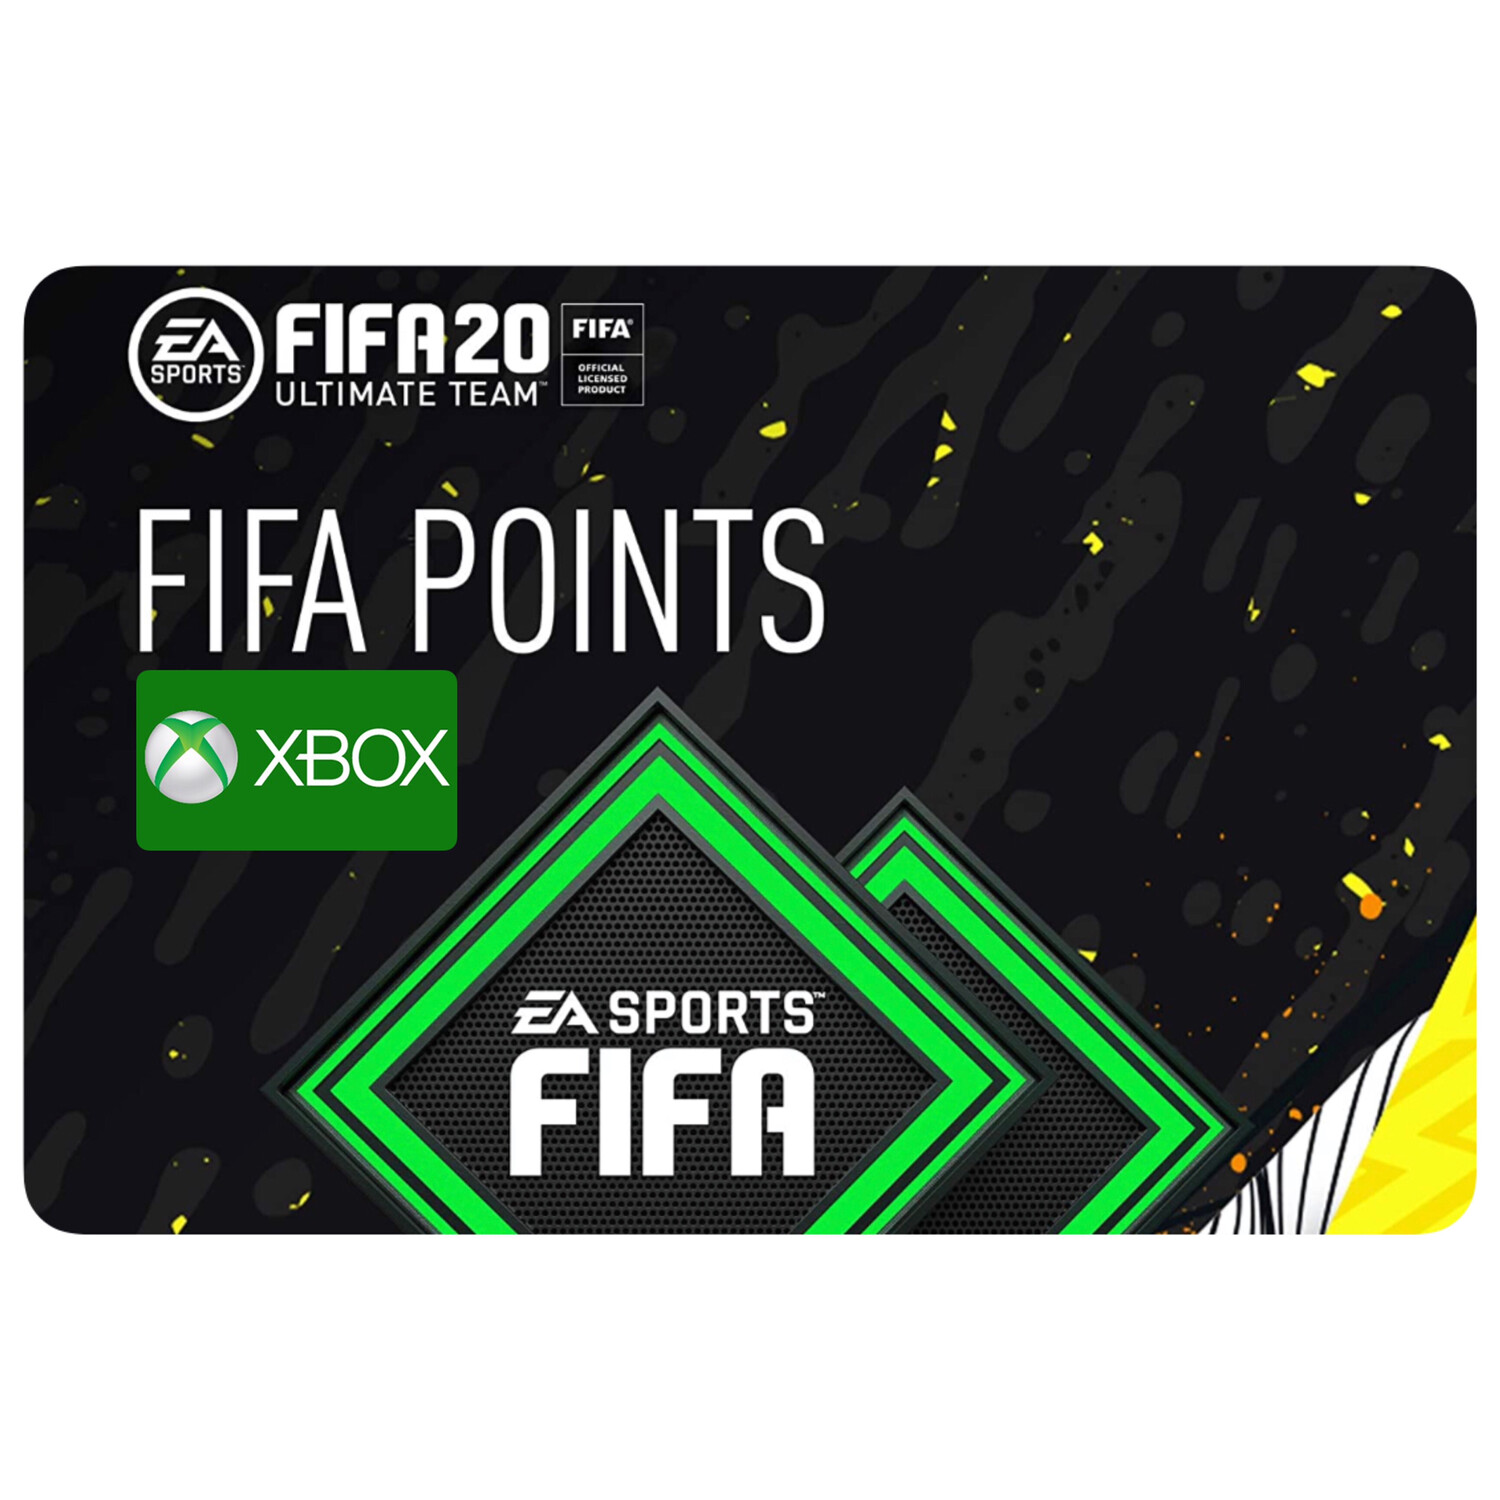 FIFA 20 FUT Points Ultimate Team for Xbox